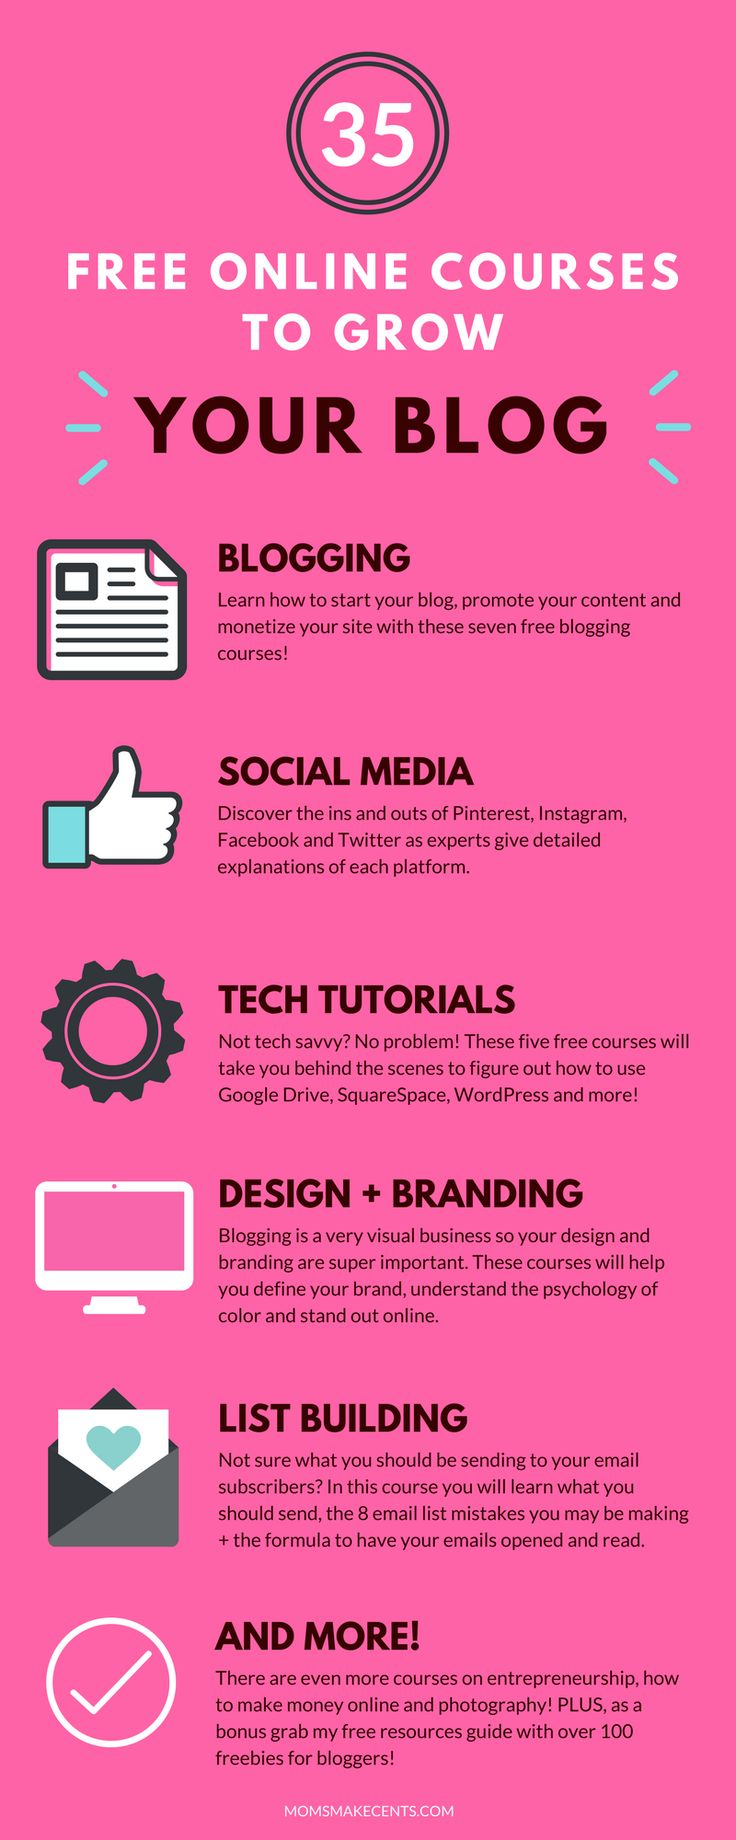 WOW! This list of free blogging courses is amazing. I just signed up for twenty of them! I know what I'll be doing this week. | blogging tips | social media courses | blogging tech tutorials | blog design | email list building |